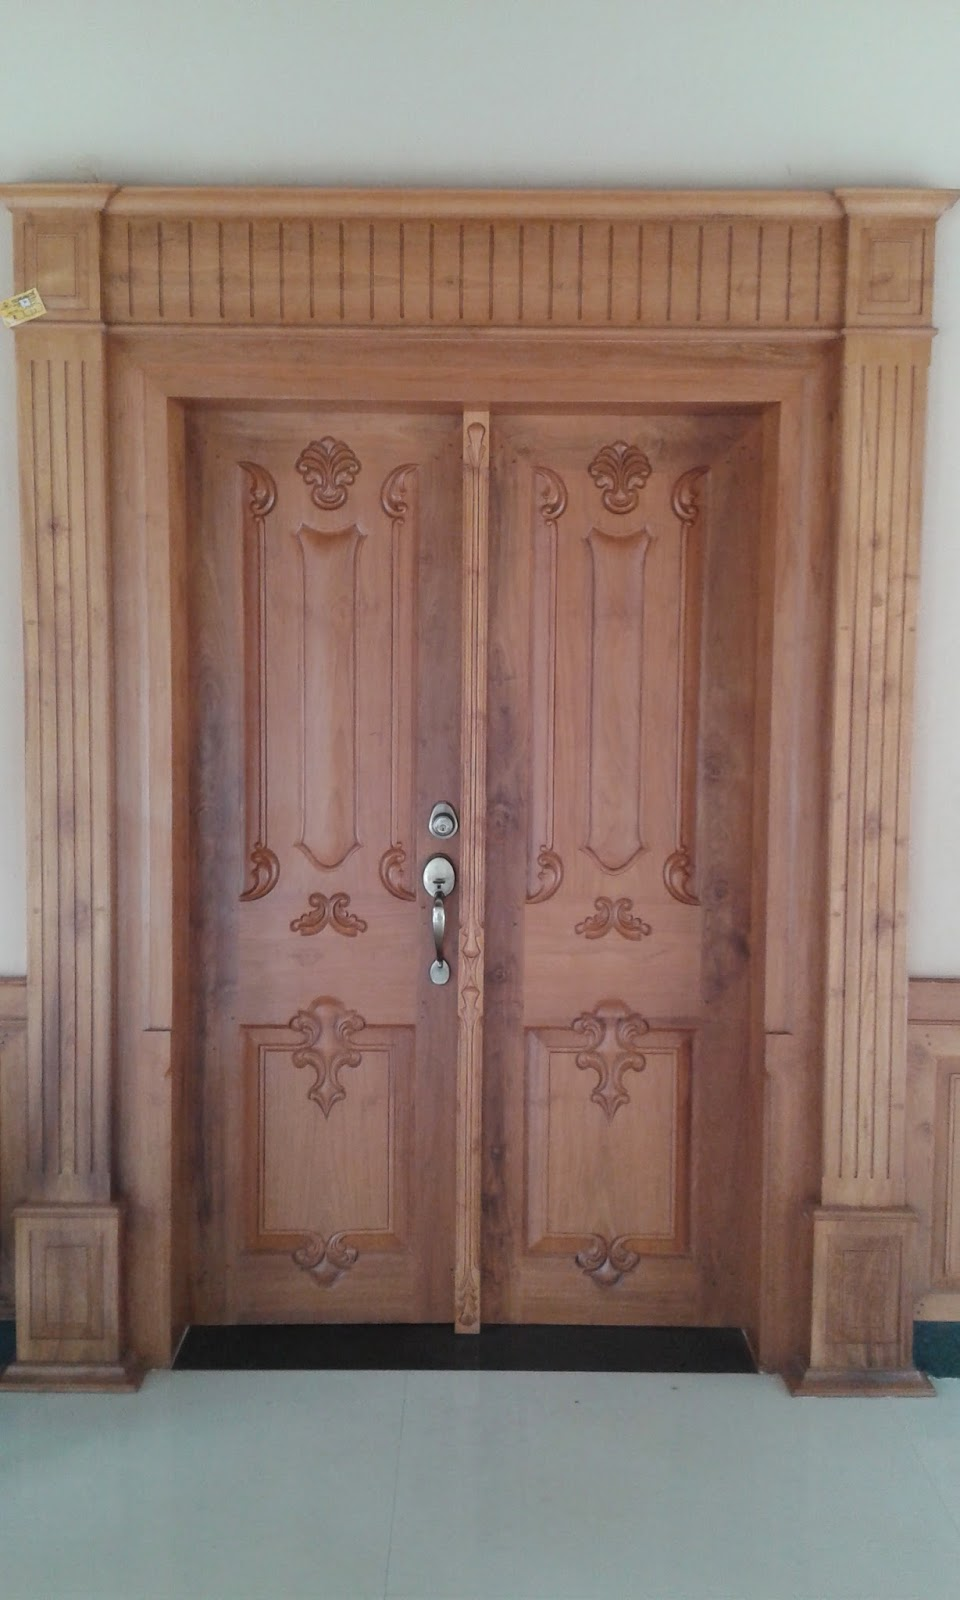 Kerala style carpenter works and designs for French main door designs